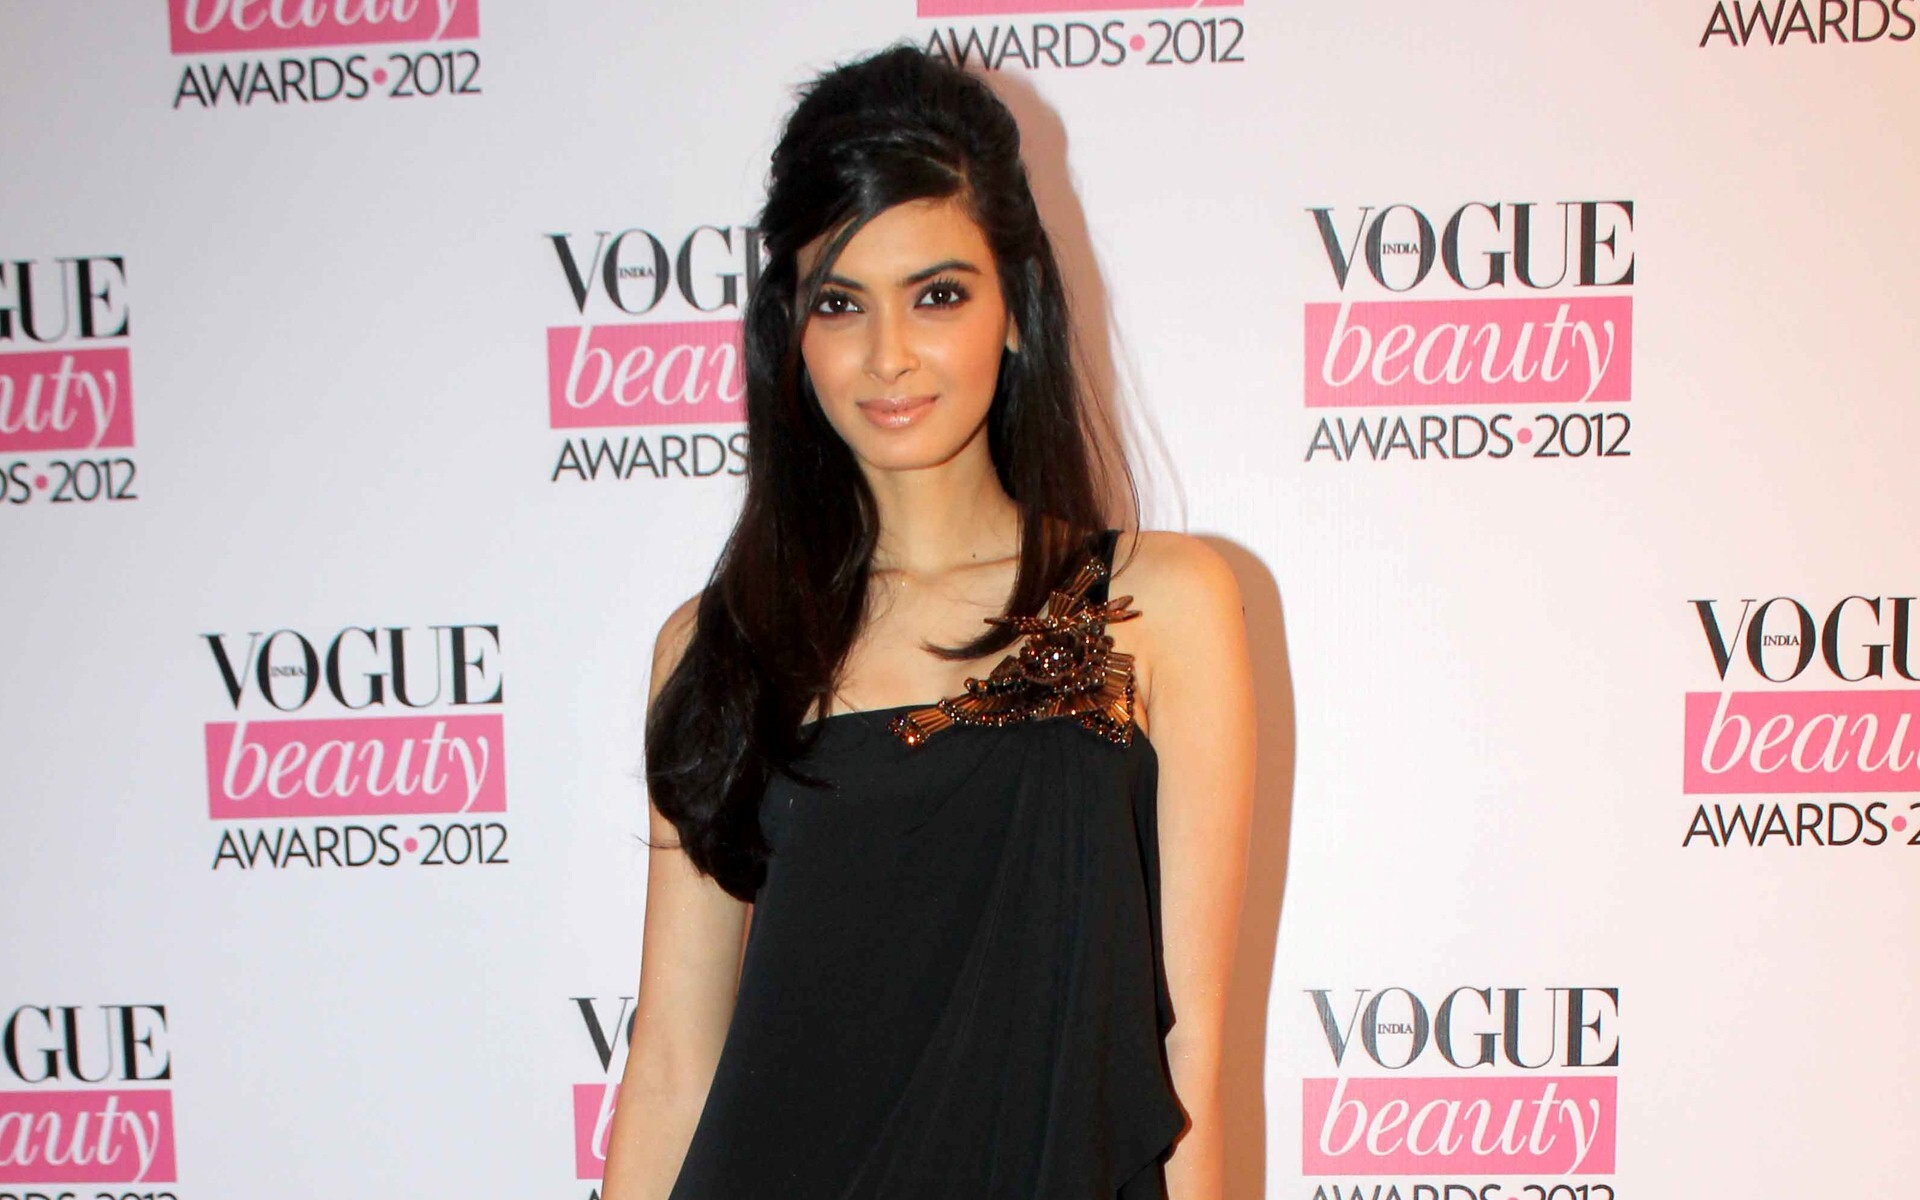 diana penty wallpapers | free download hd hot bollywood actress images